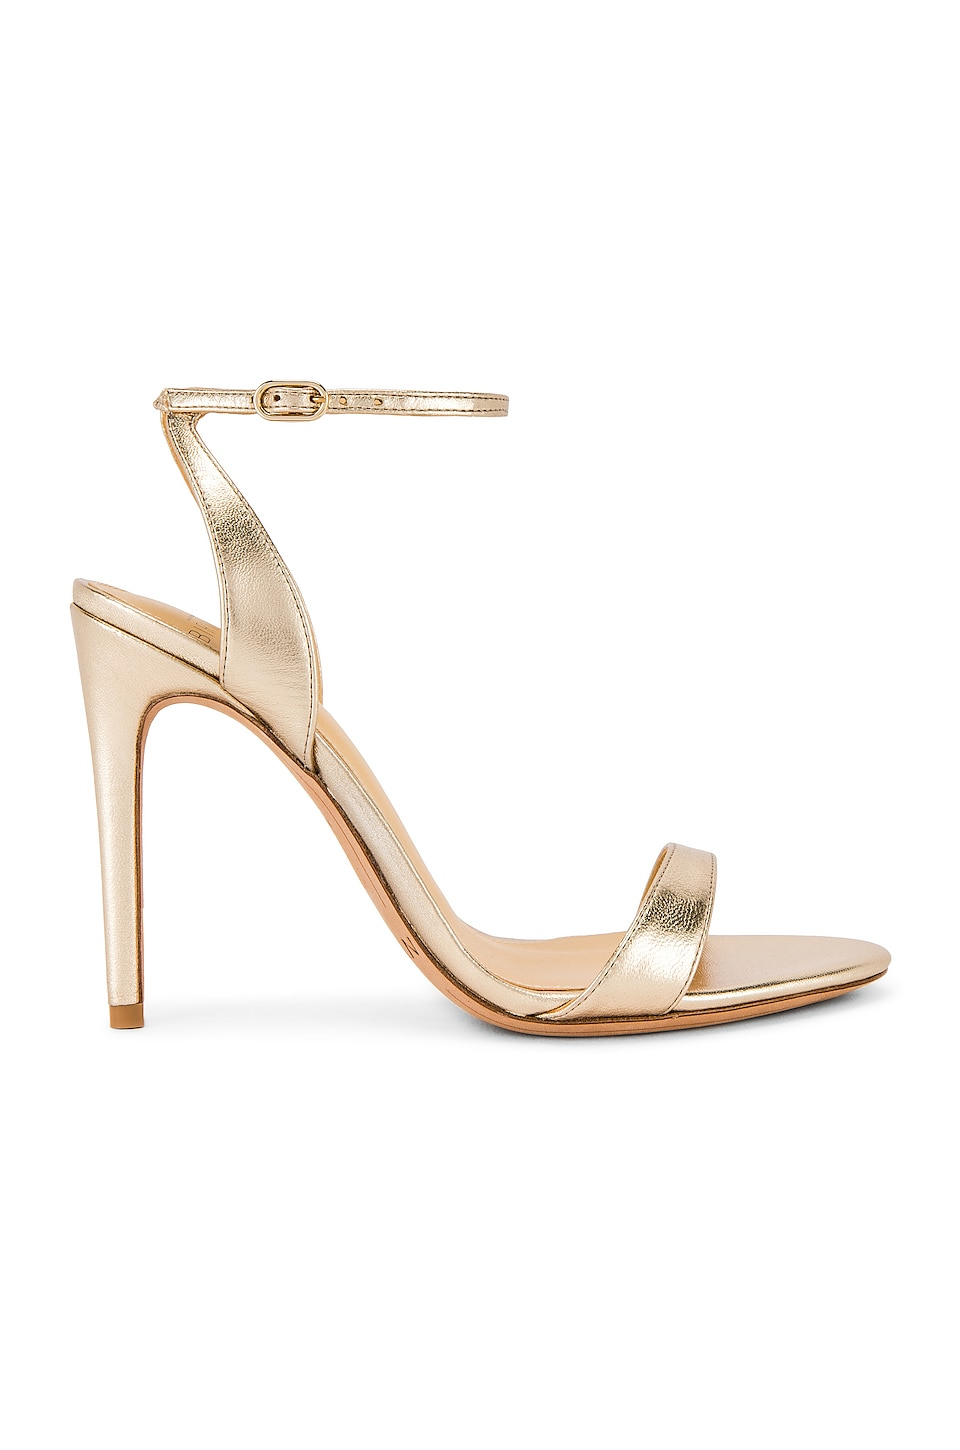 Alexandre Birman Willow Sandal in Golden